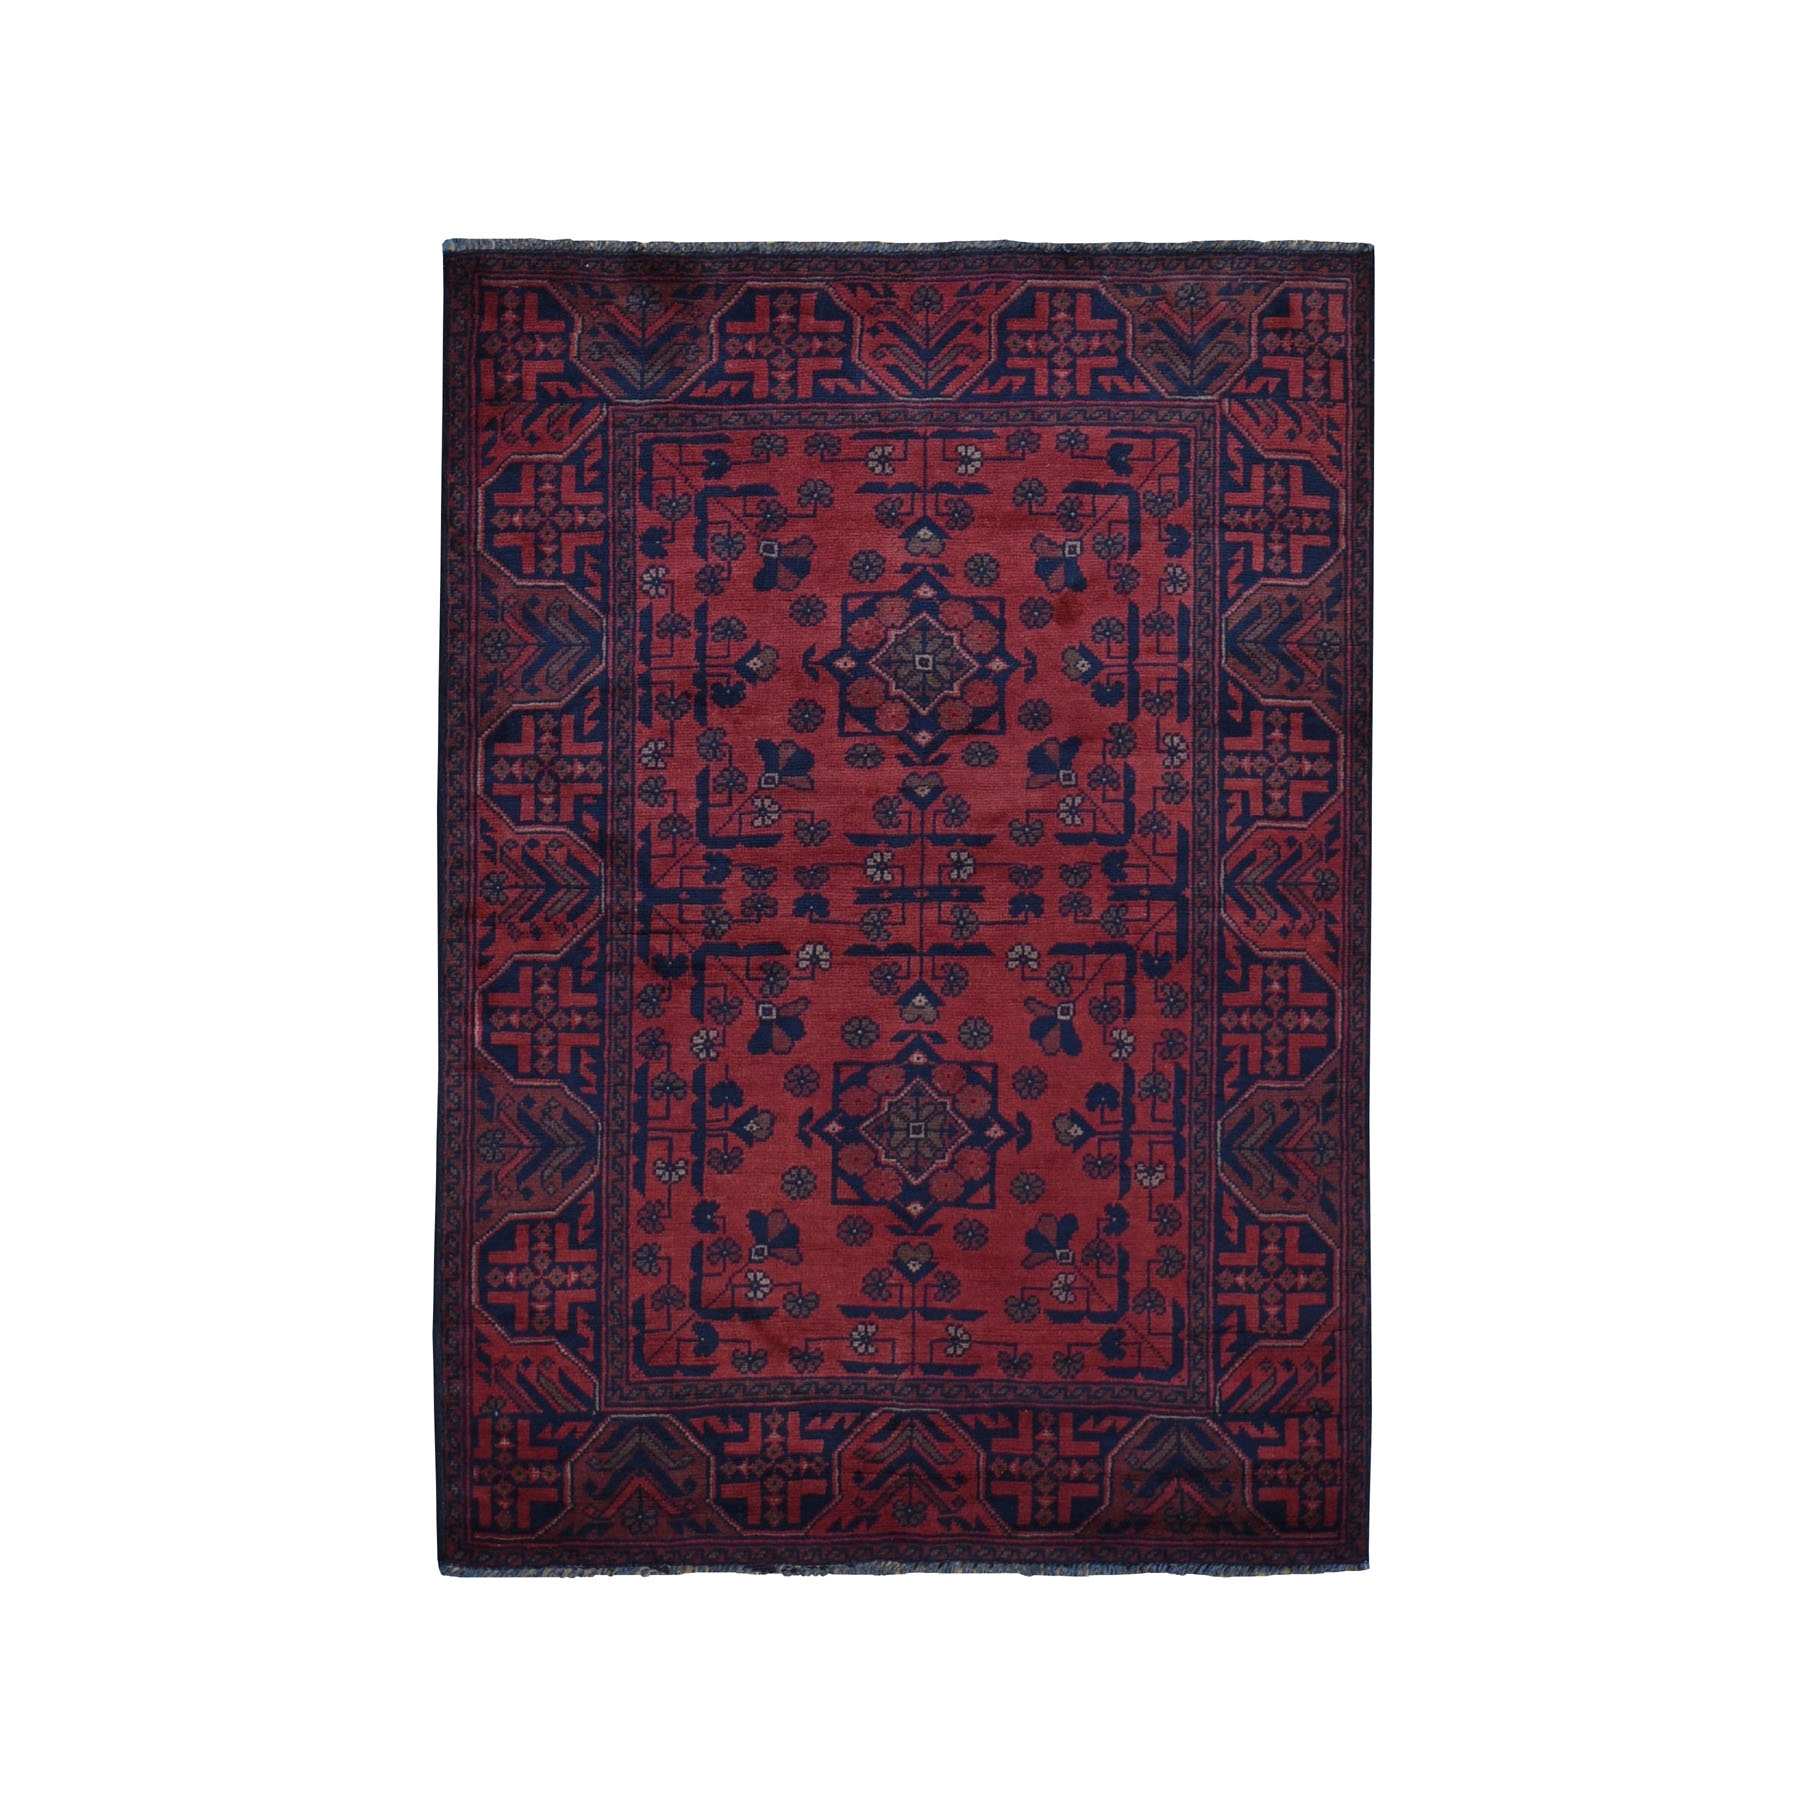 Nomadic And Village Collection Hand Knotted Red Rug No: 0199456